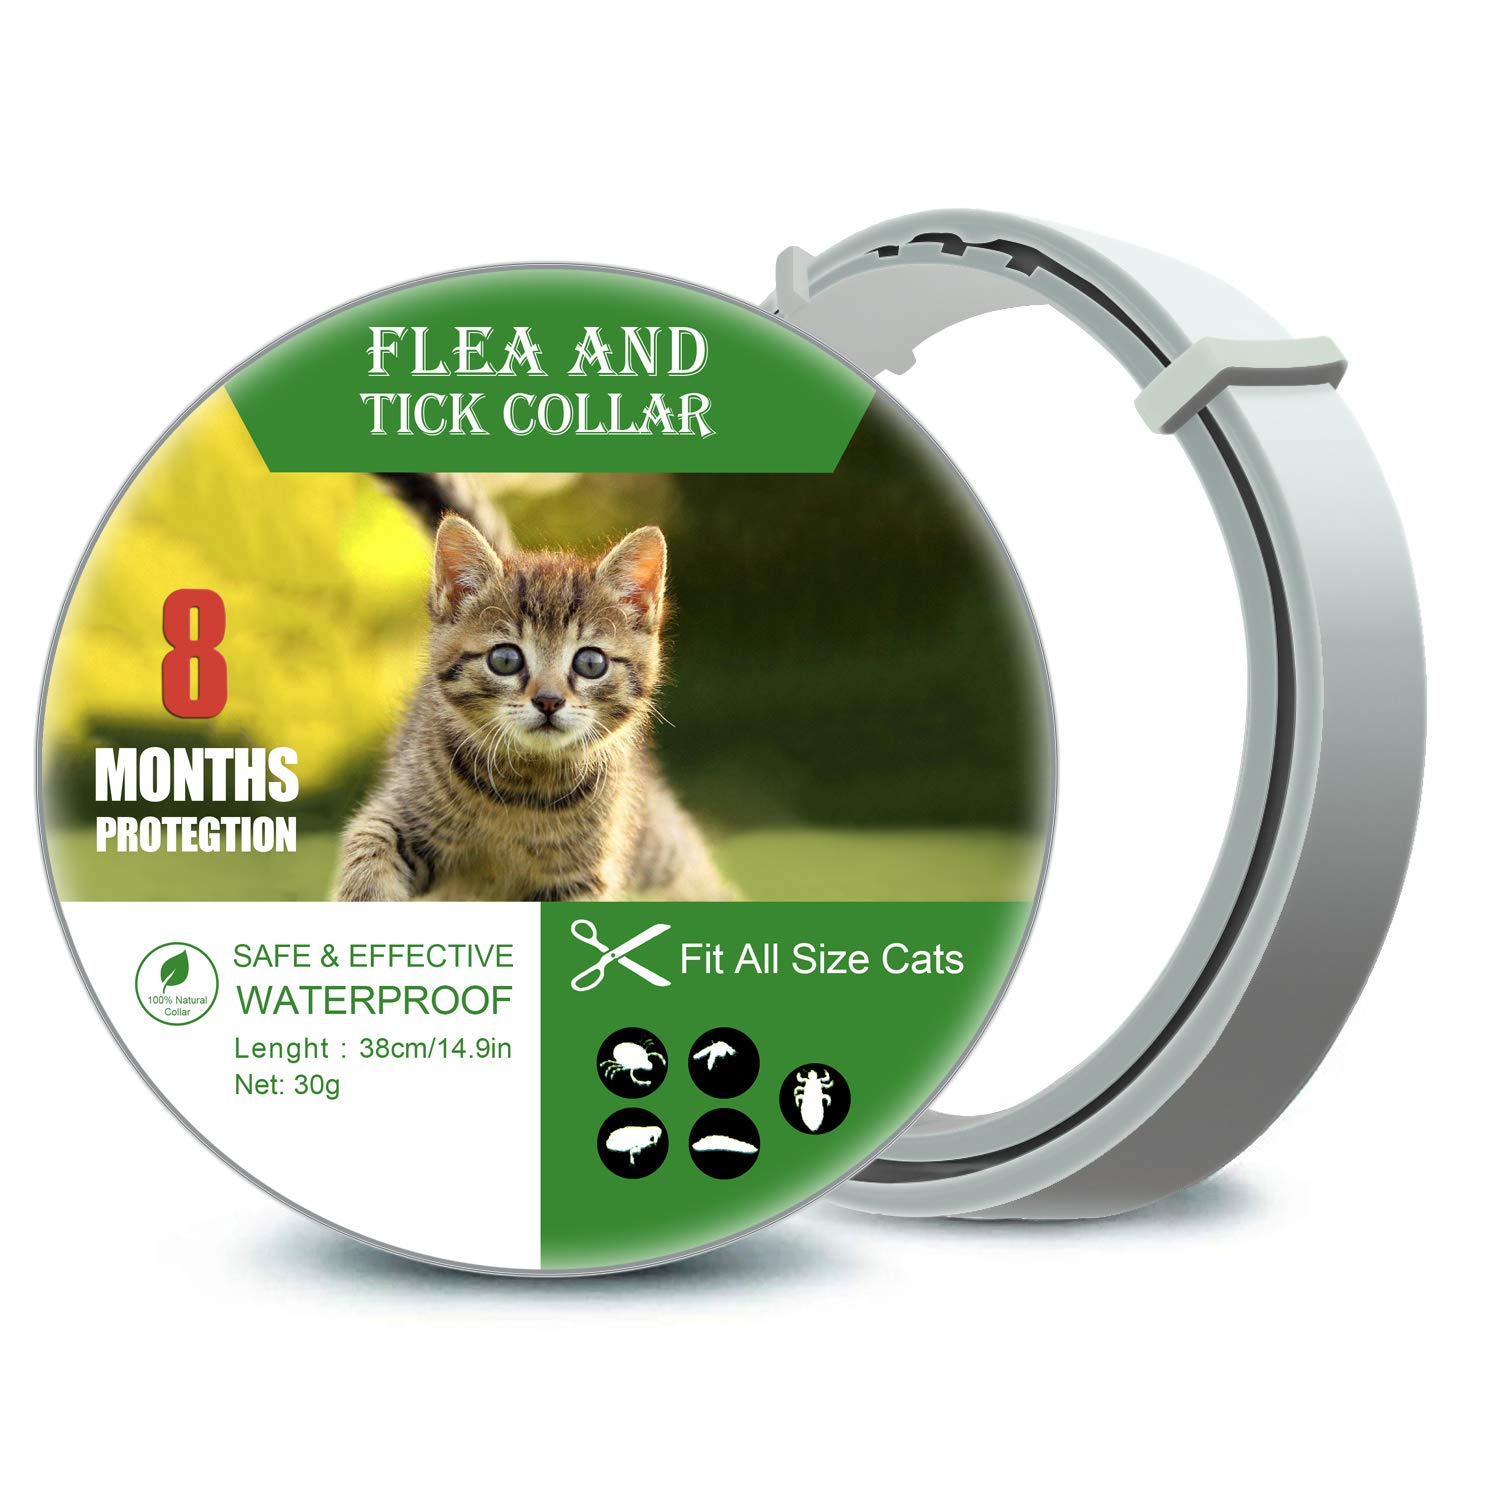 Colleen-Meloff Contral Cat Collar for Cats Up to 8 Months Protection -b3